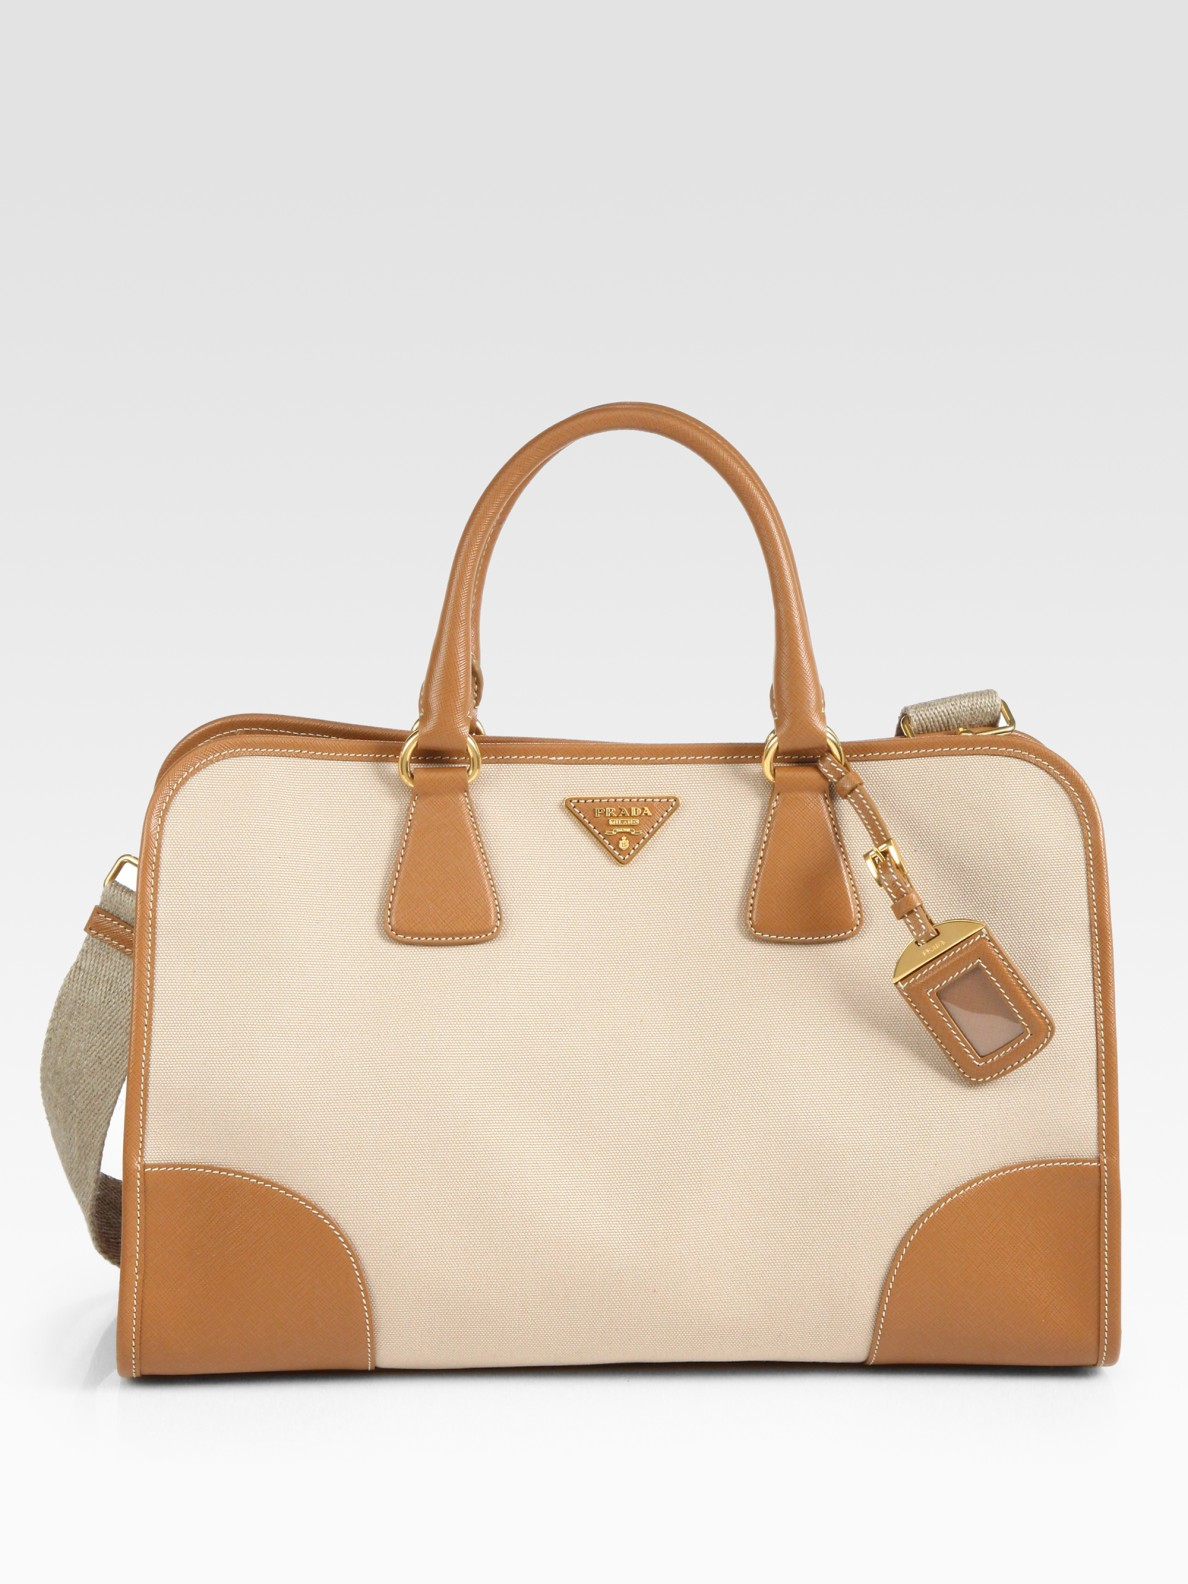 f8da7758f9d5f4 ... official lyst prada saffiano leather canvas top handle bag in natural  bbb91 b94b6